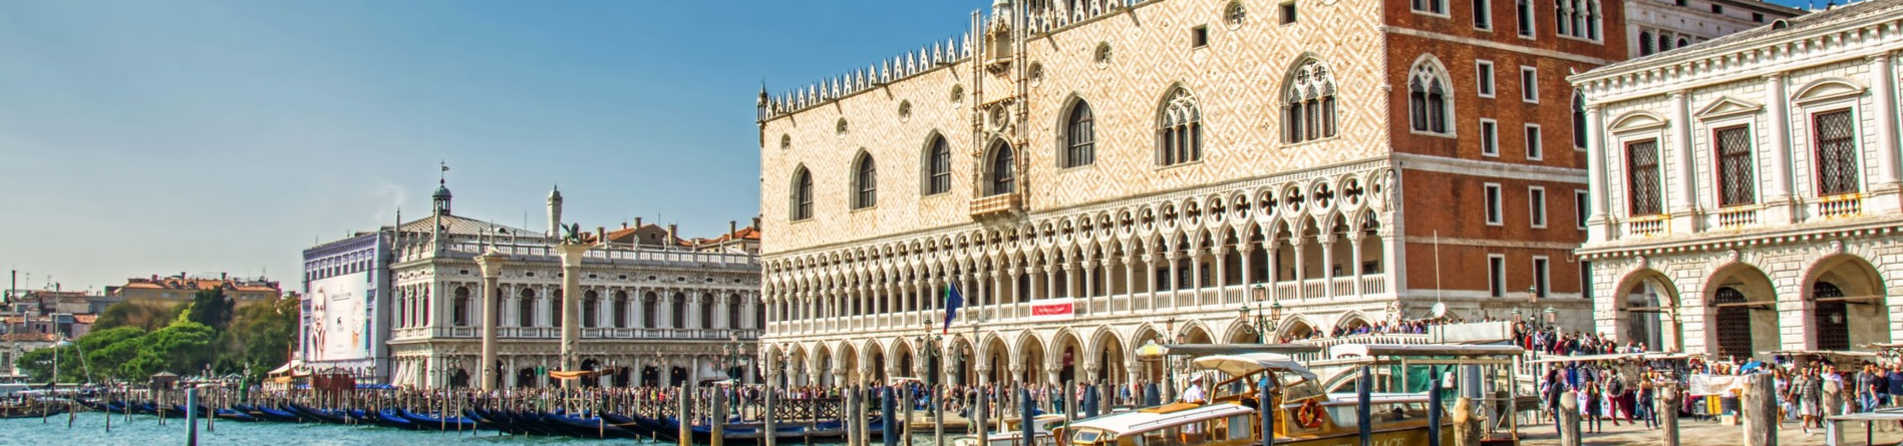 Why you should visit Doge's Palace when in Venice